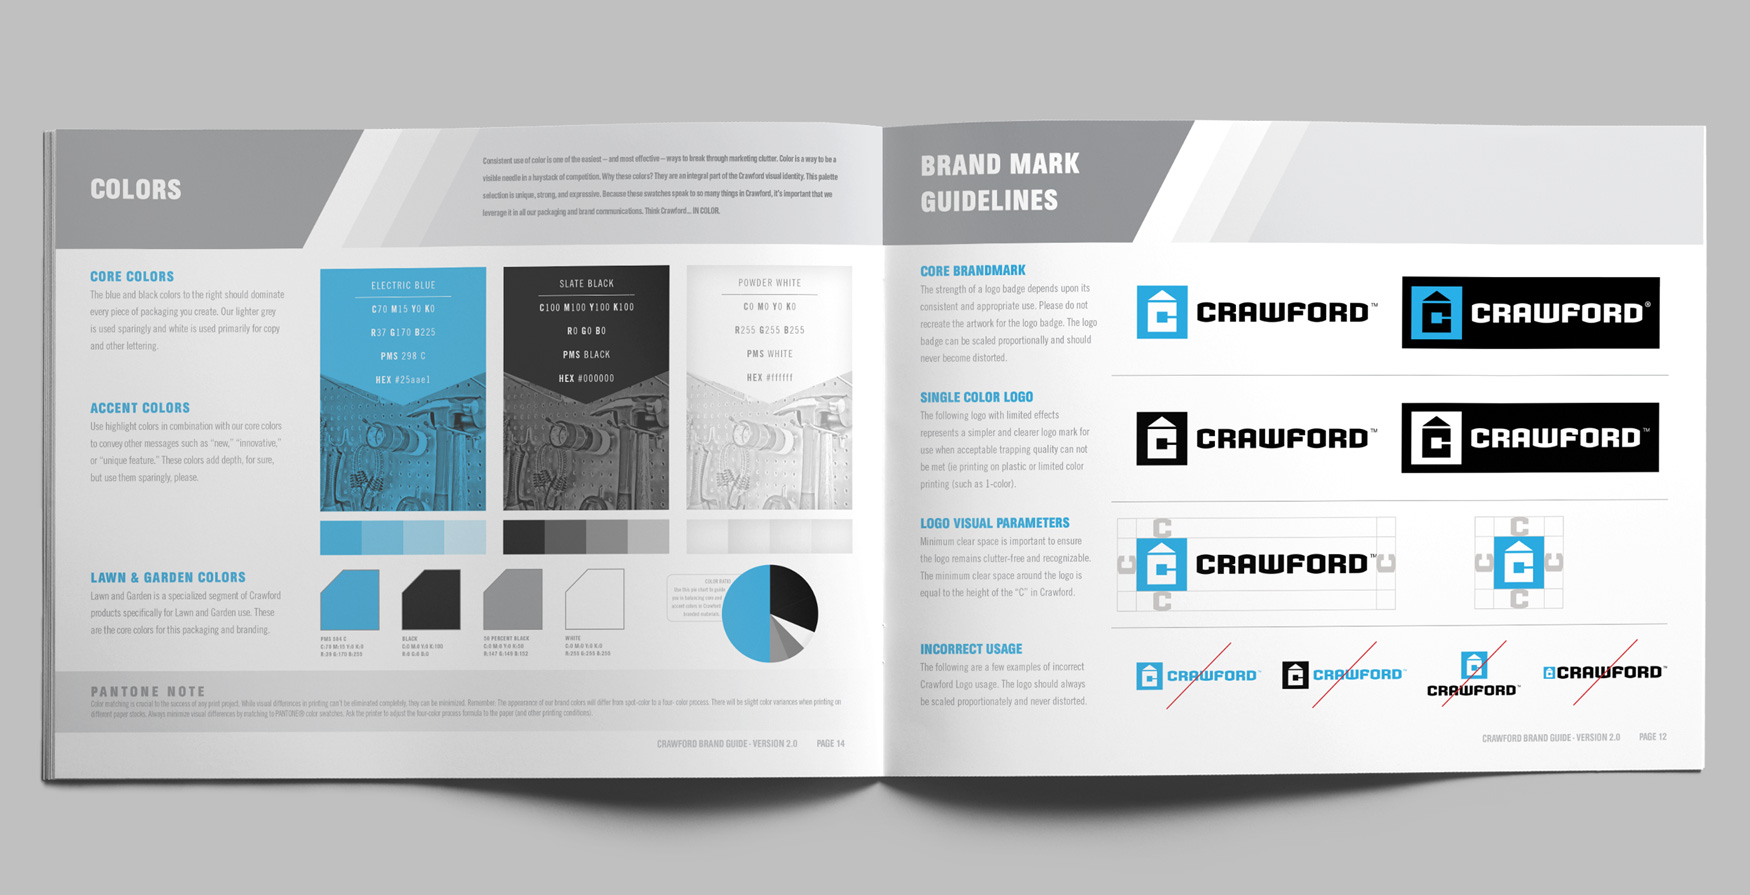 crawford fm creative rh fernandocreative com brand packaging guidelines pdf Brand Book